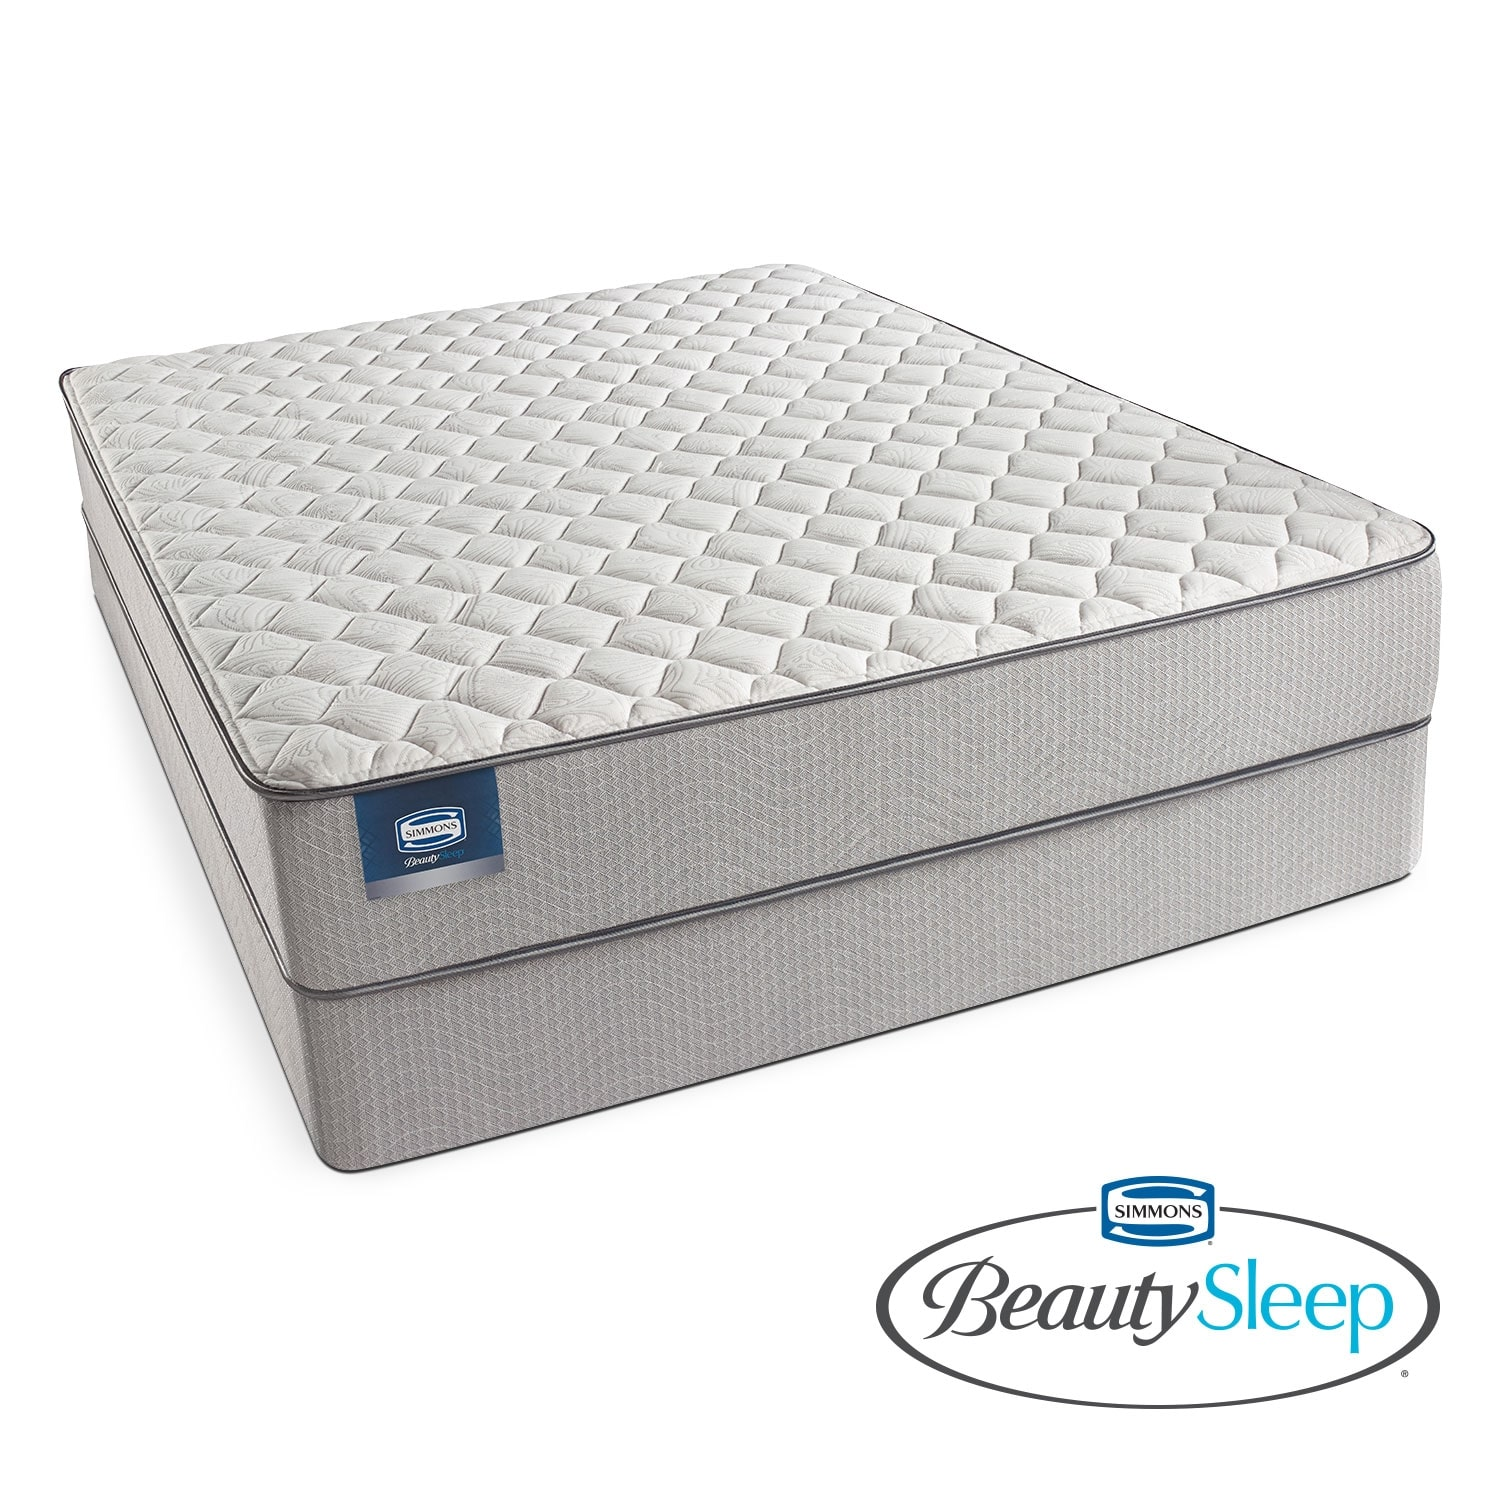 Mattresses and Bedding - Canal St. Firm Twin XL Mattress/Foundation Set